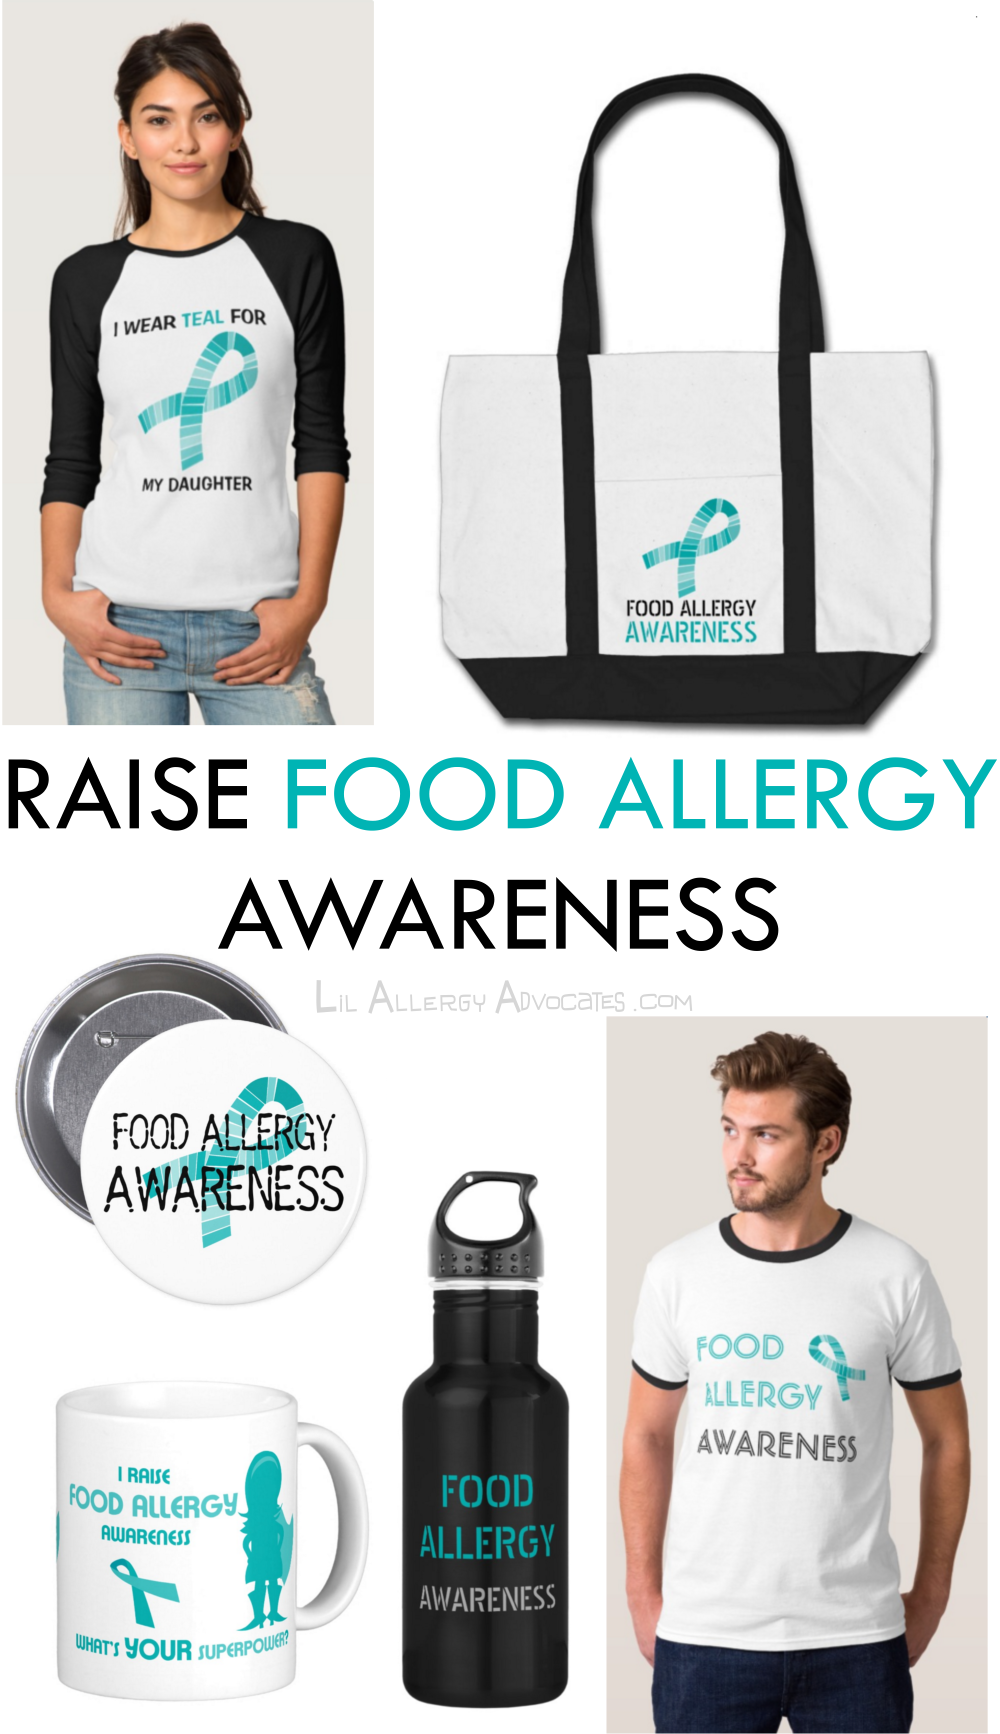 Raise food allergy awareness with our teal ribbon designs. Choose from mugs, apparel, office and kitchenware items with the awareness designs. www.lilallergyadvocates.com